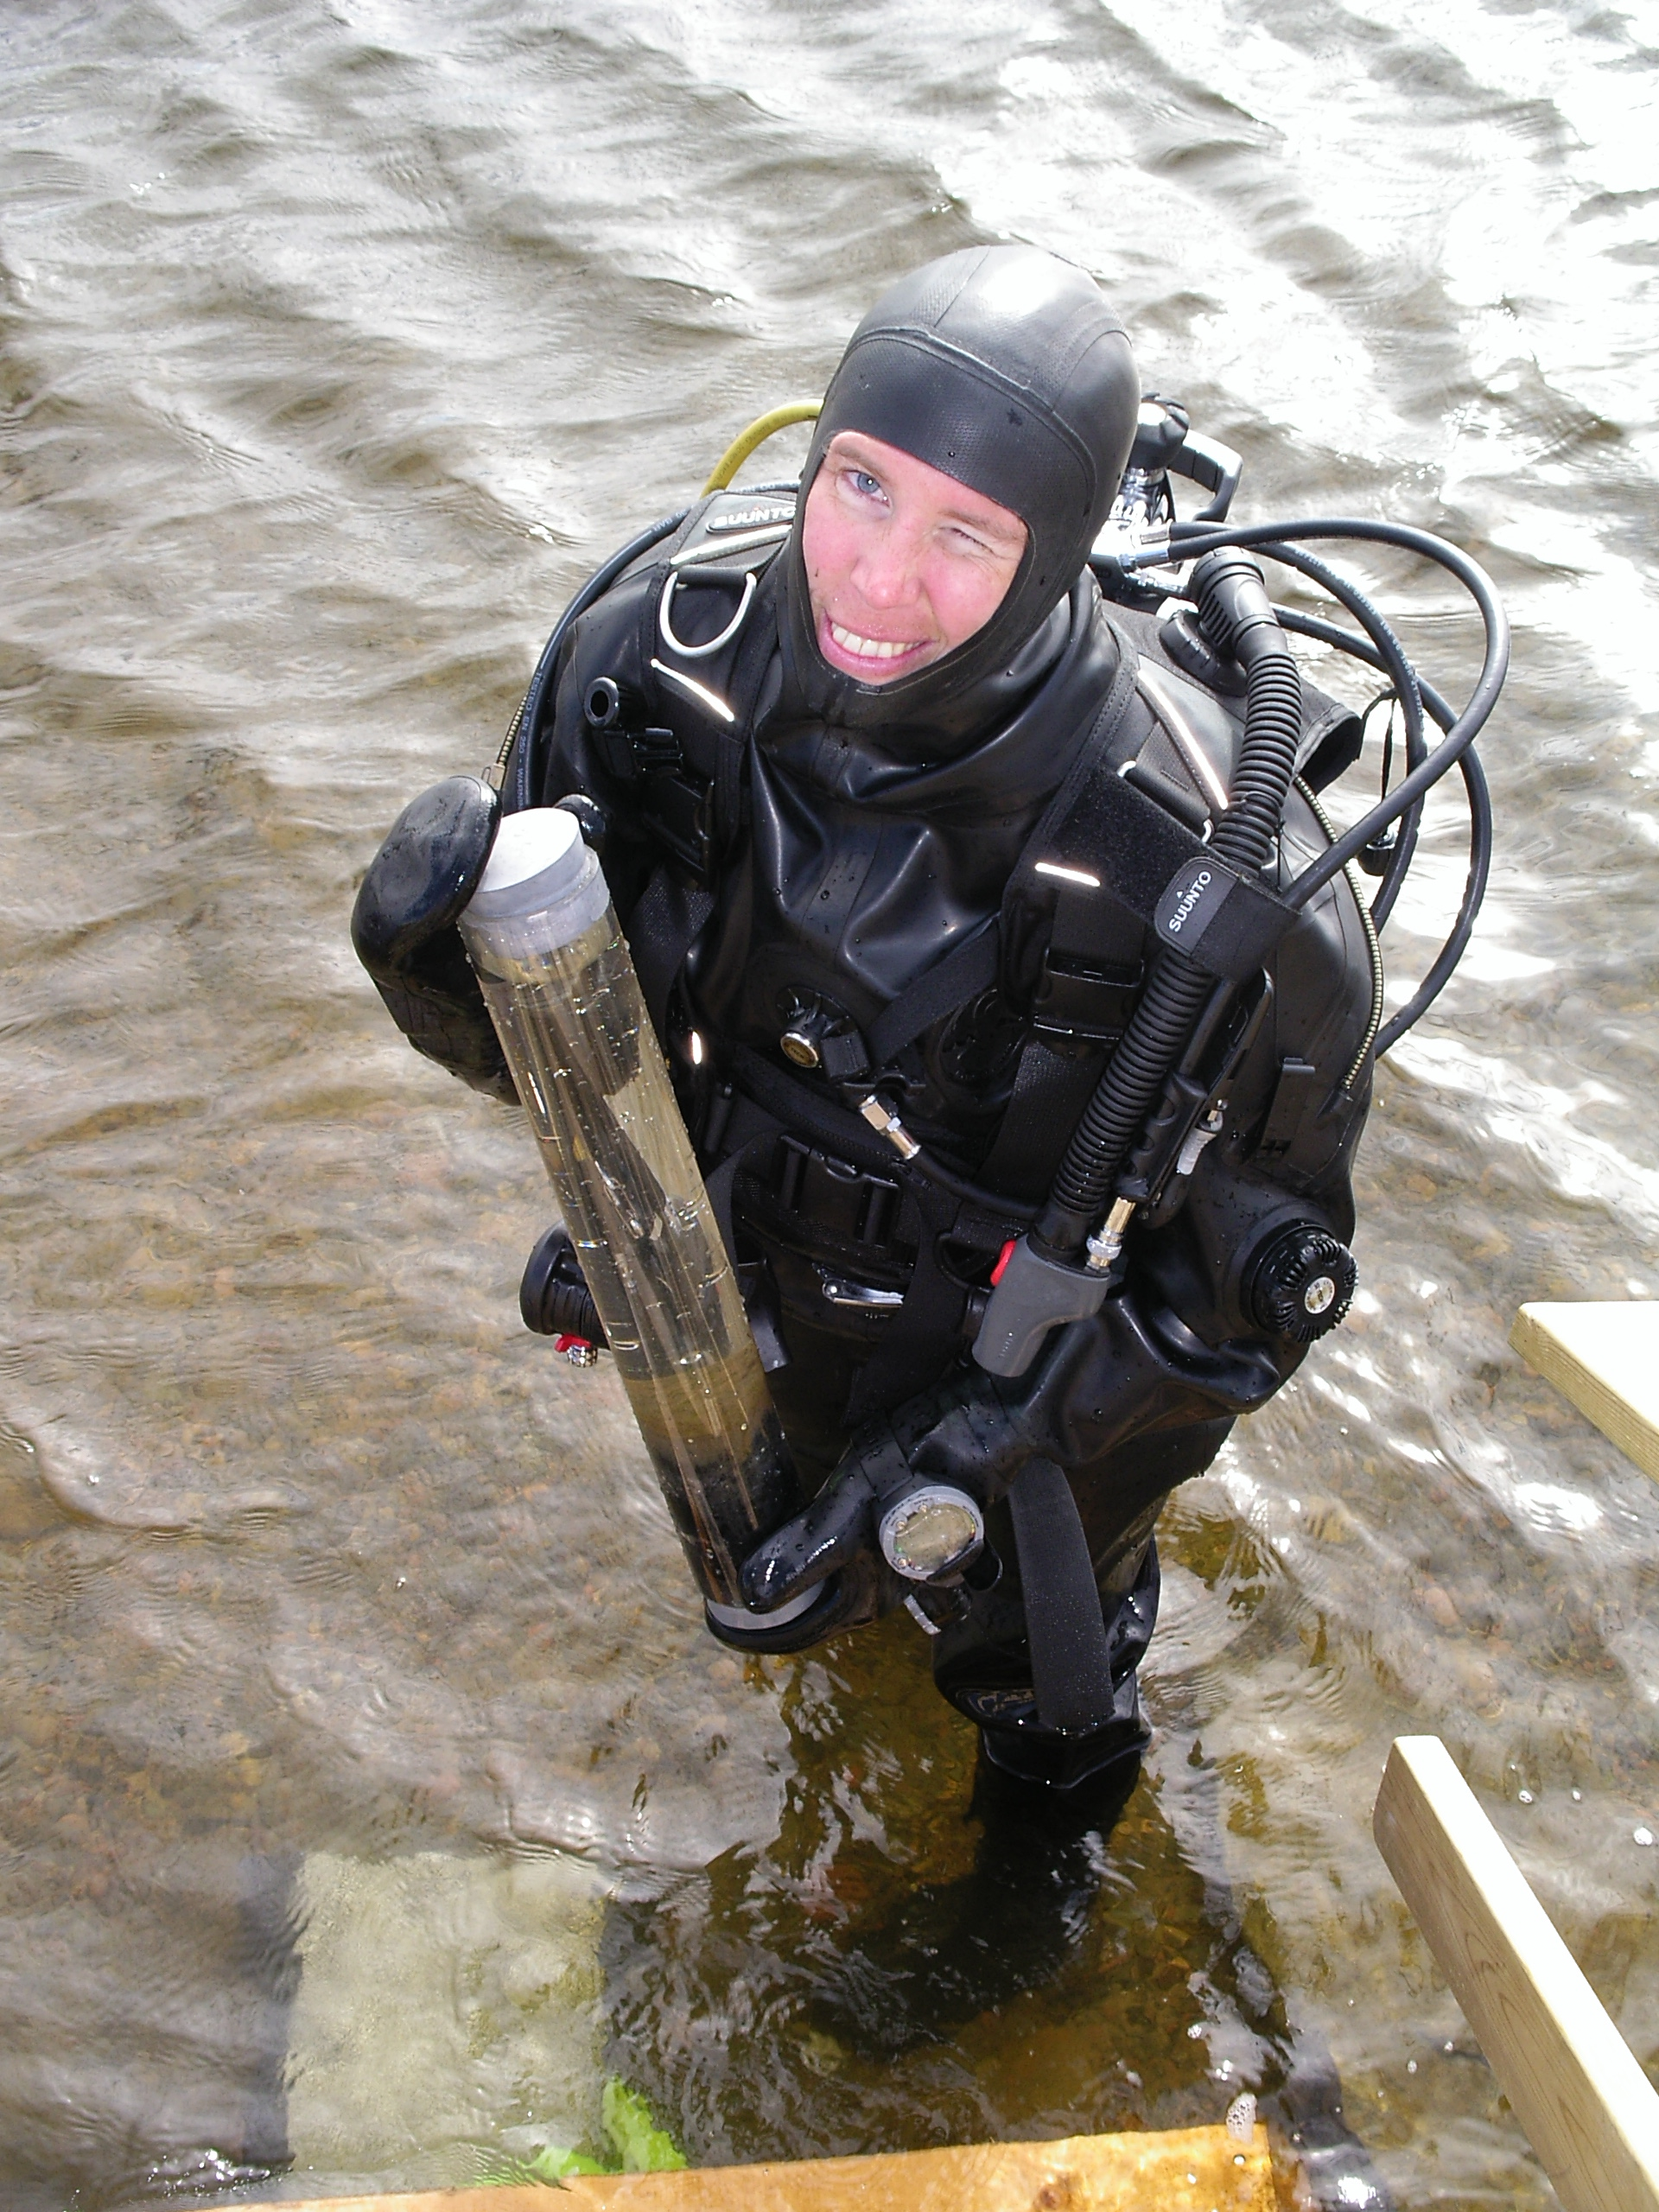 Essi Keskinen with a sampler, standing in shallow water in full diving gear.